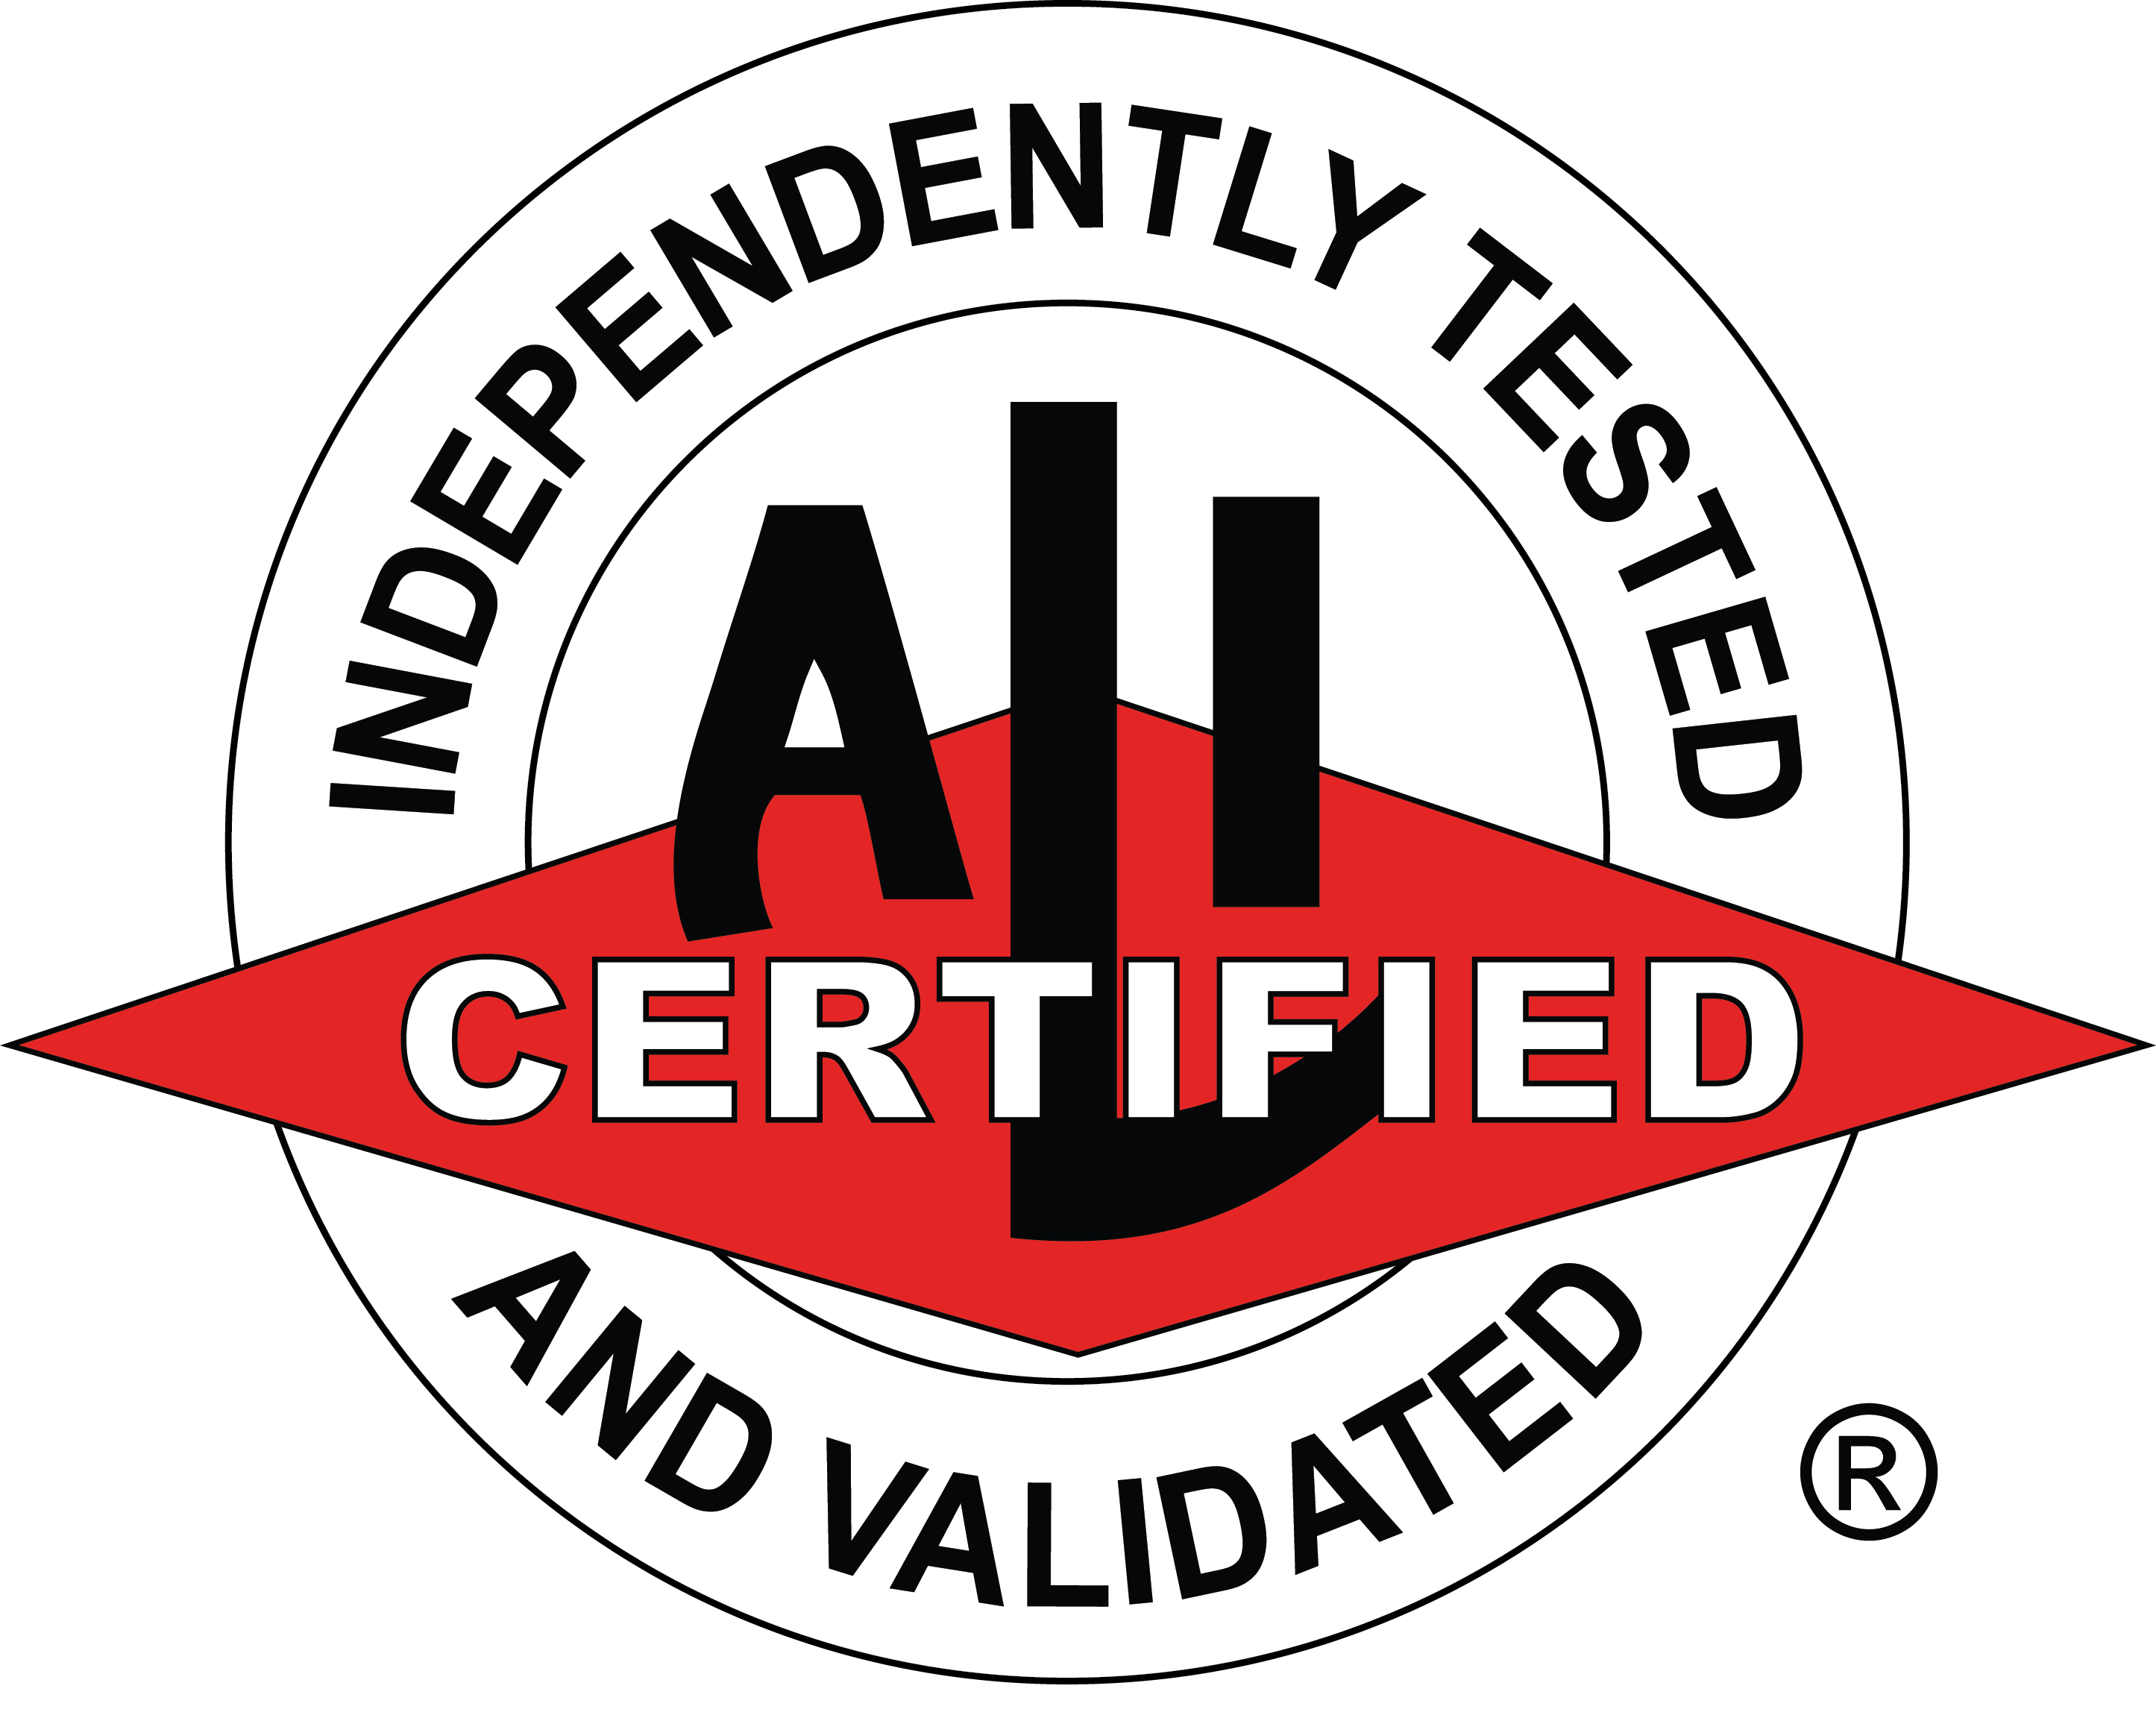 ali-validated-logo.png